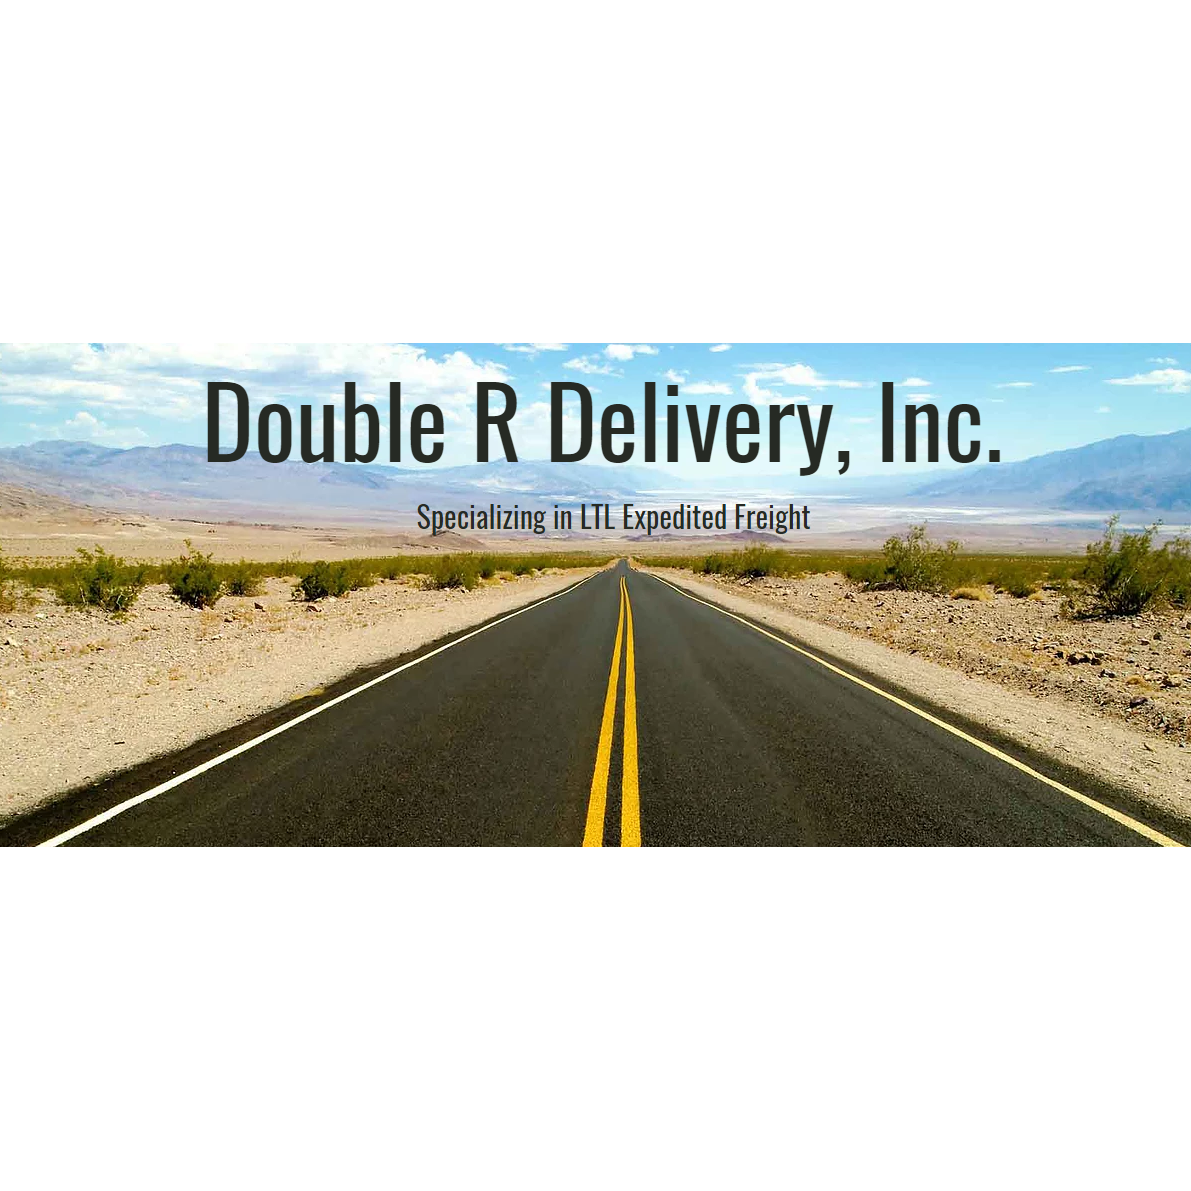 Double R Delivery, Inc. image 2